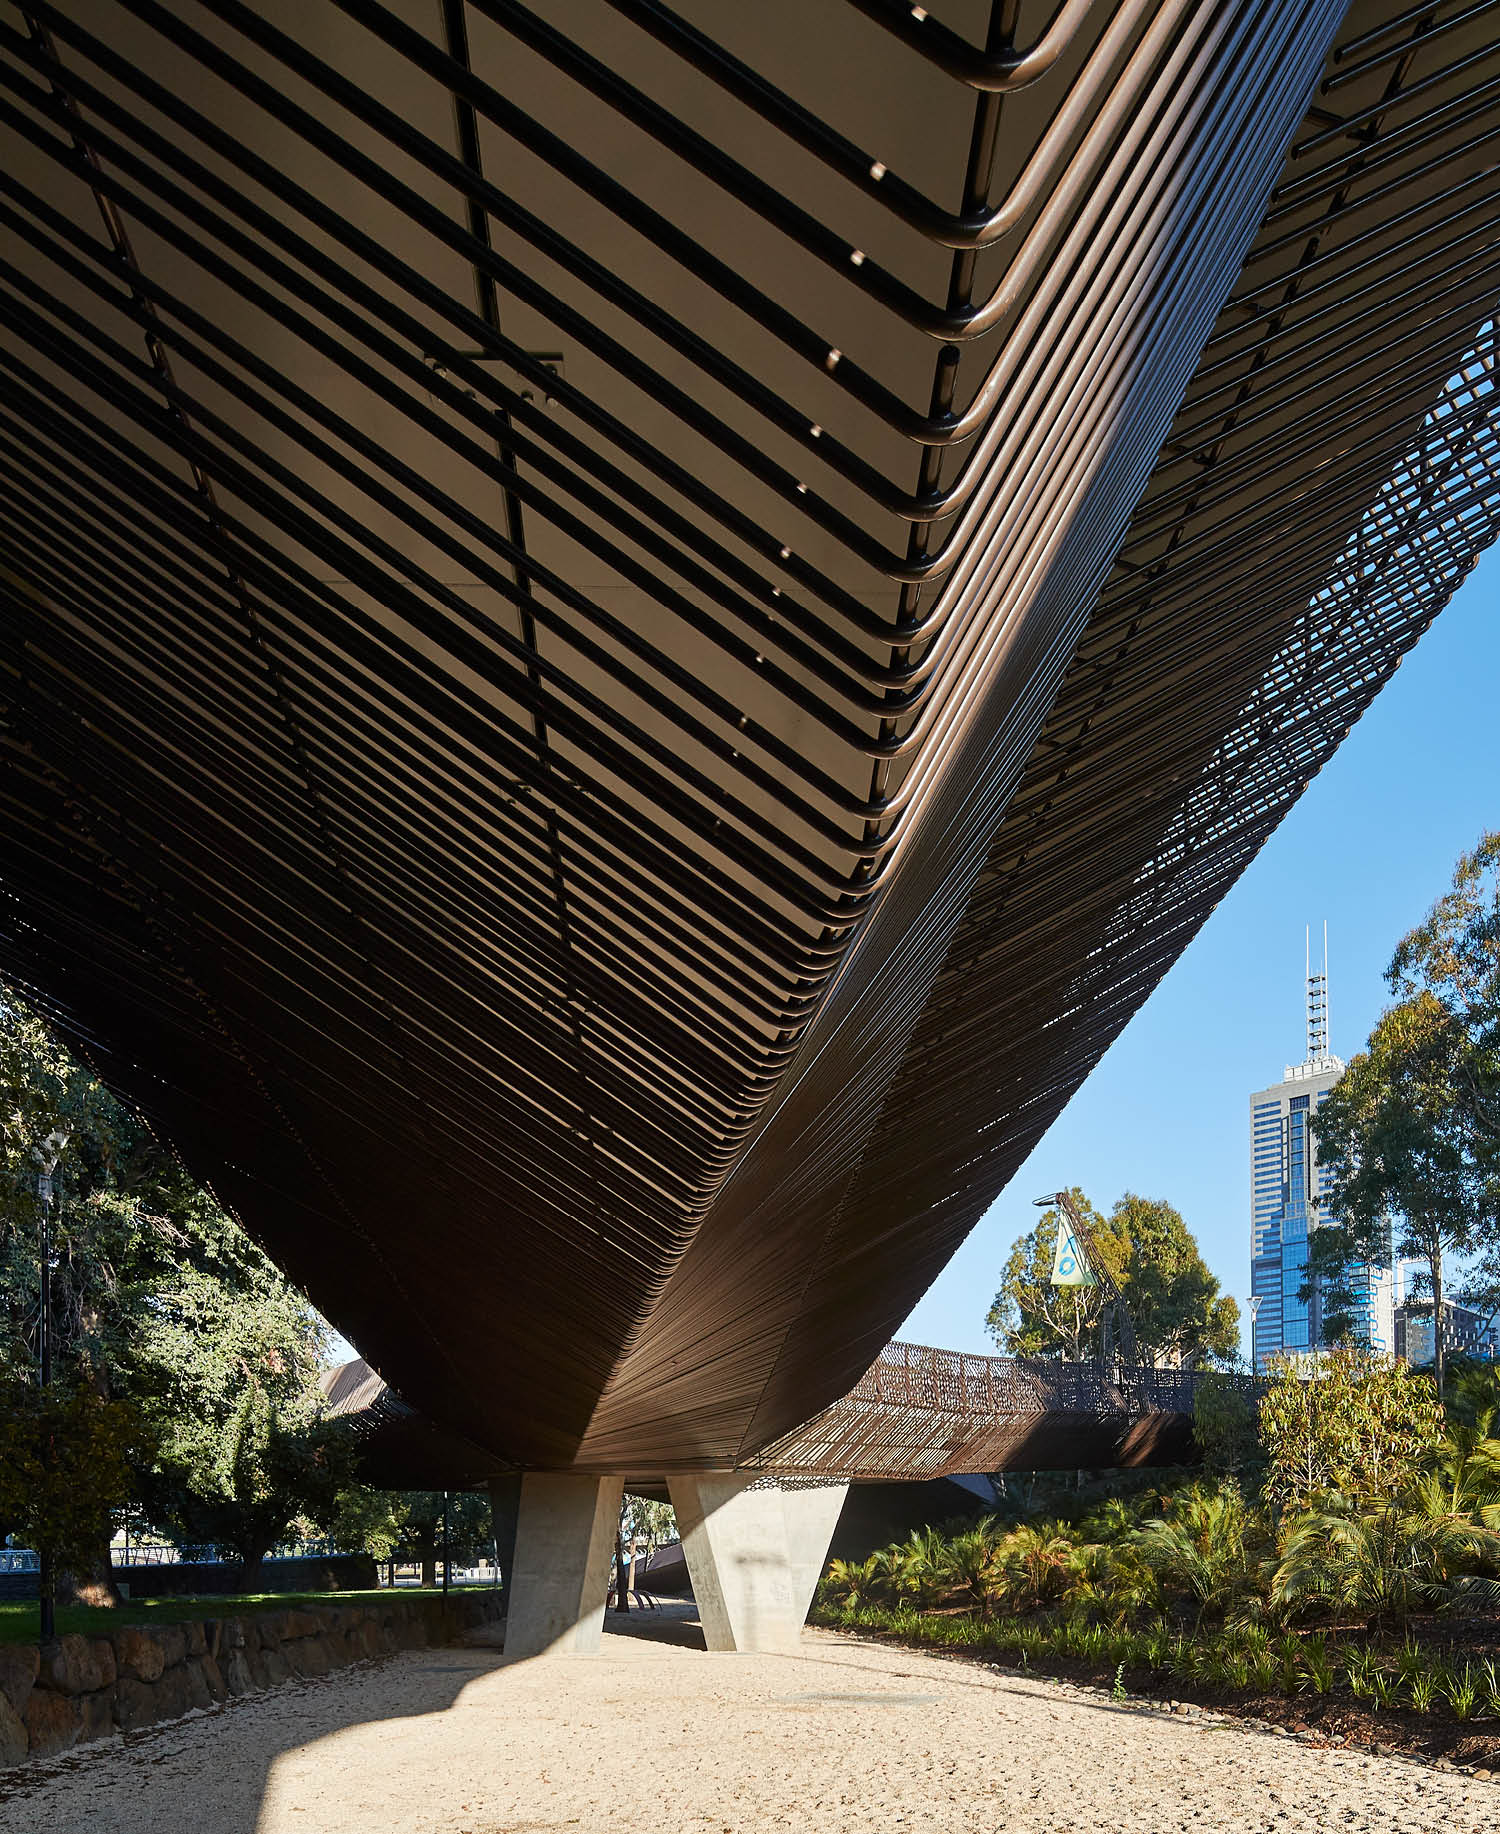 The bridge underbelly torques to give steel an appearance of a solid shape